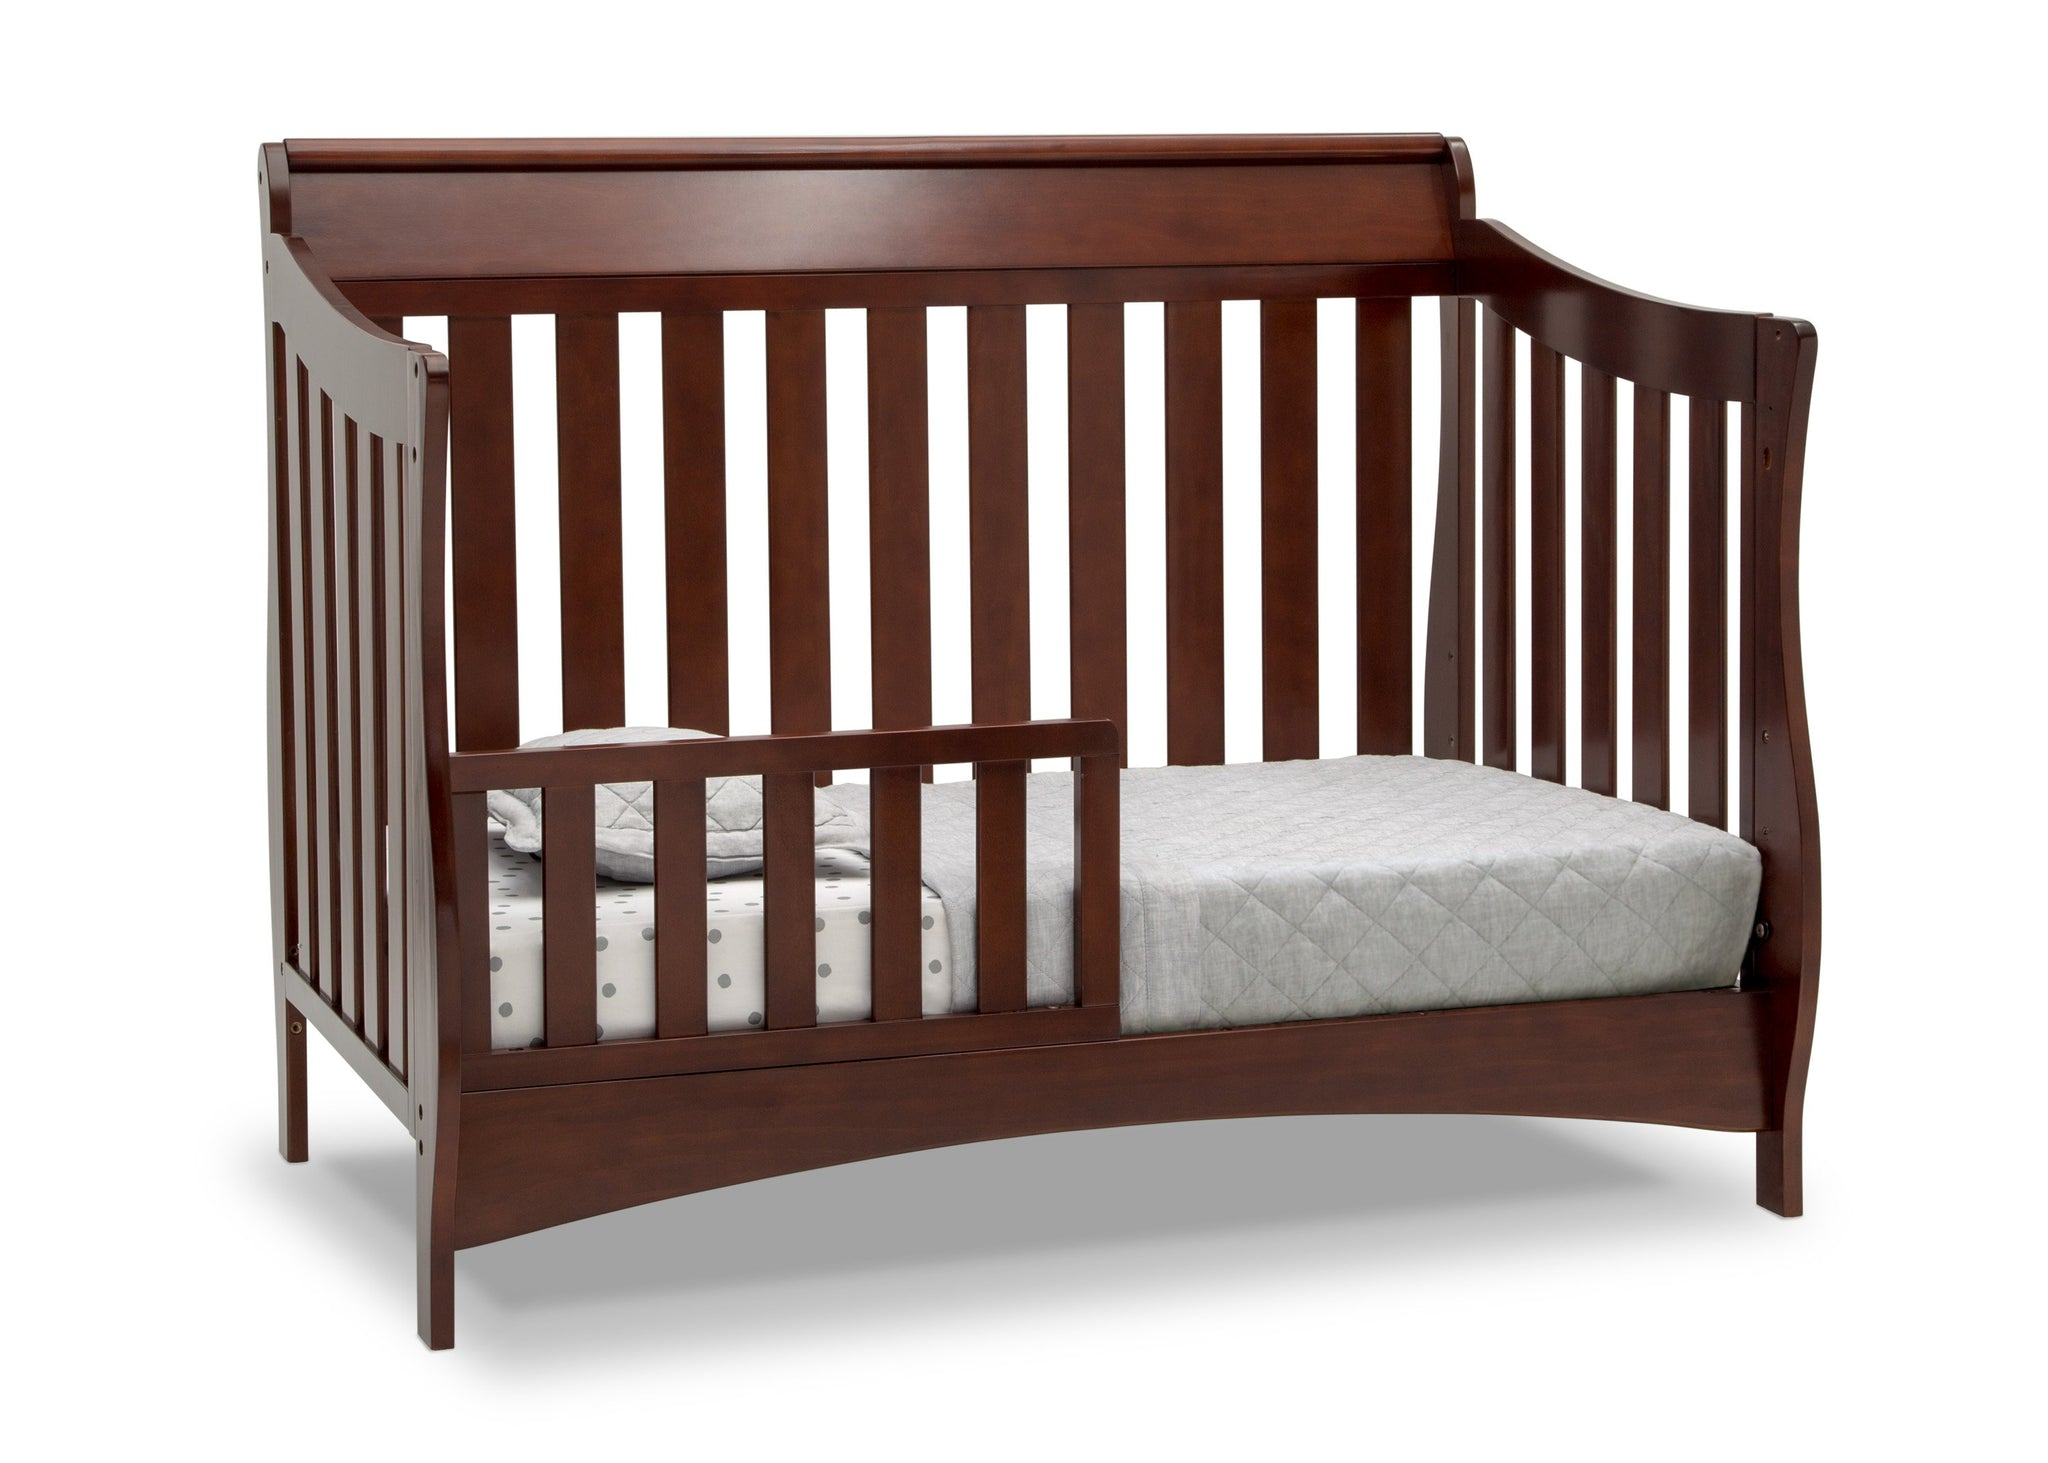 Delta Children Black Cherry Espresso (607) Bentley S Series Deluxe 6-in-1 Convertible Crib, Right Toddler Bed Silo View